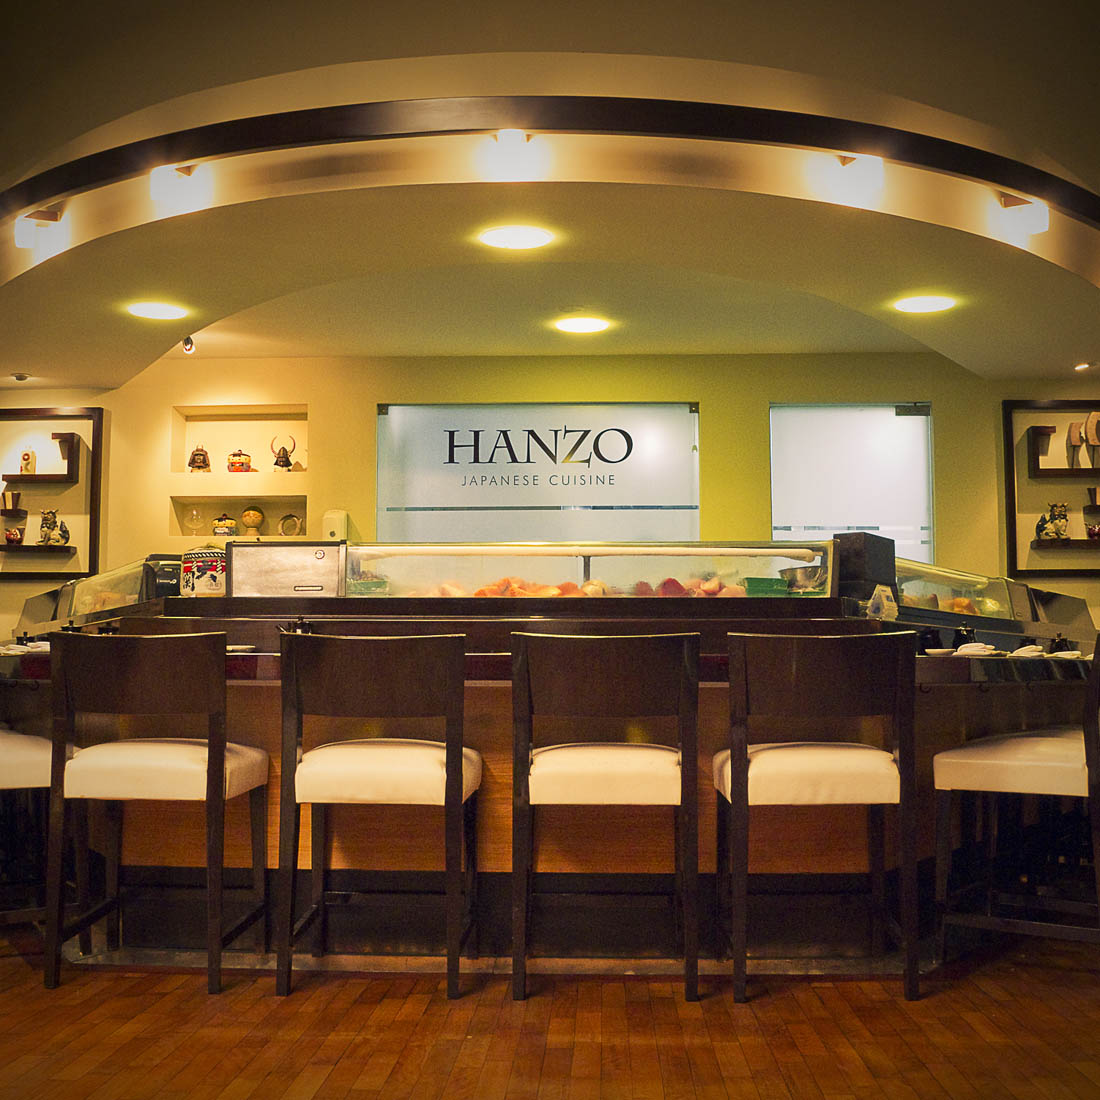 HANZO SURCO Restaurant - and Peruvian Food NIKKEI AND JAPANESE CUISINE - SANTIAGO DE SURCO - MESA 24/7 Guide | LIMA - Peru